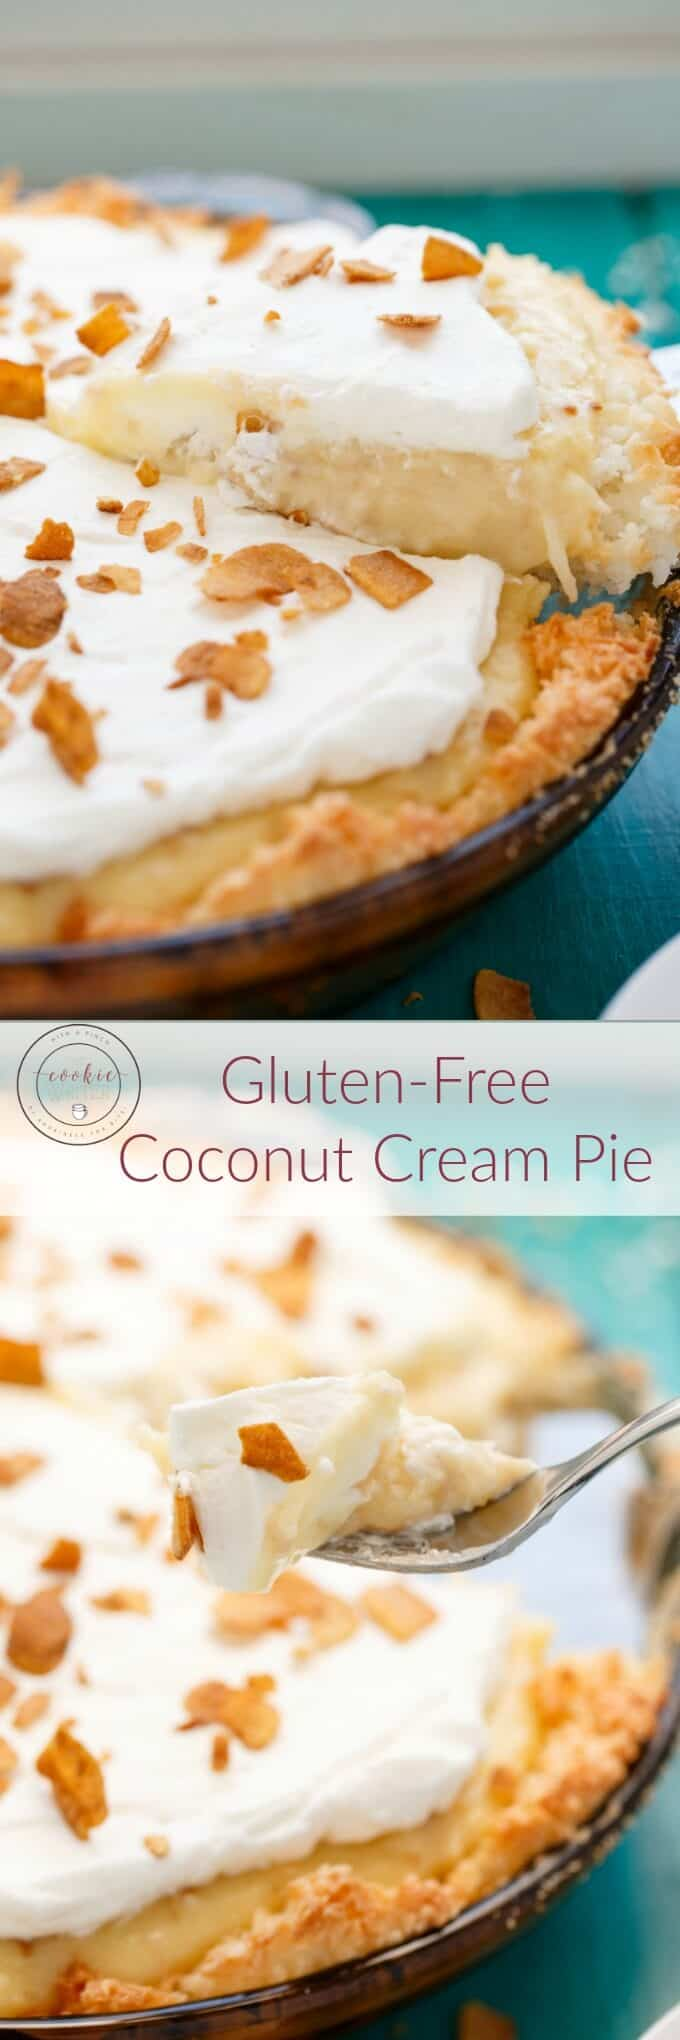 Gluten-Free Coconut Cream Pie